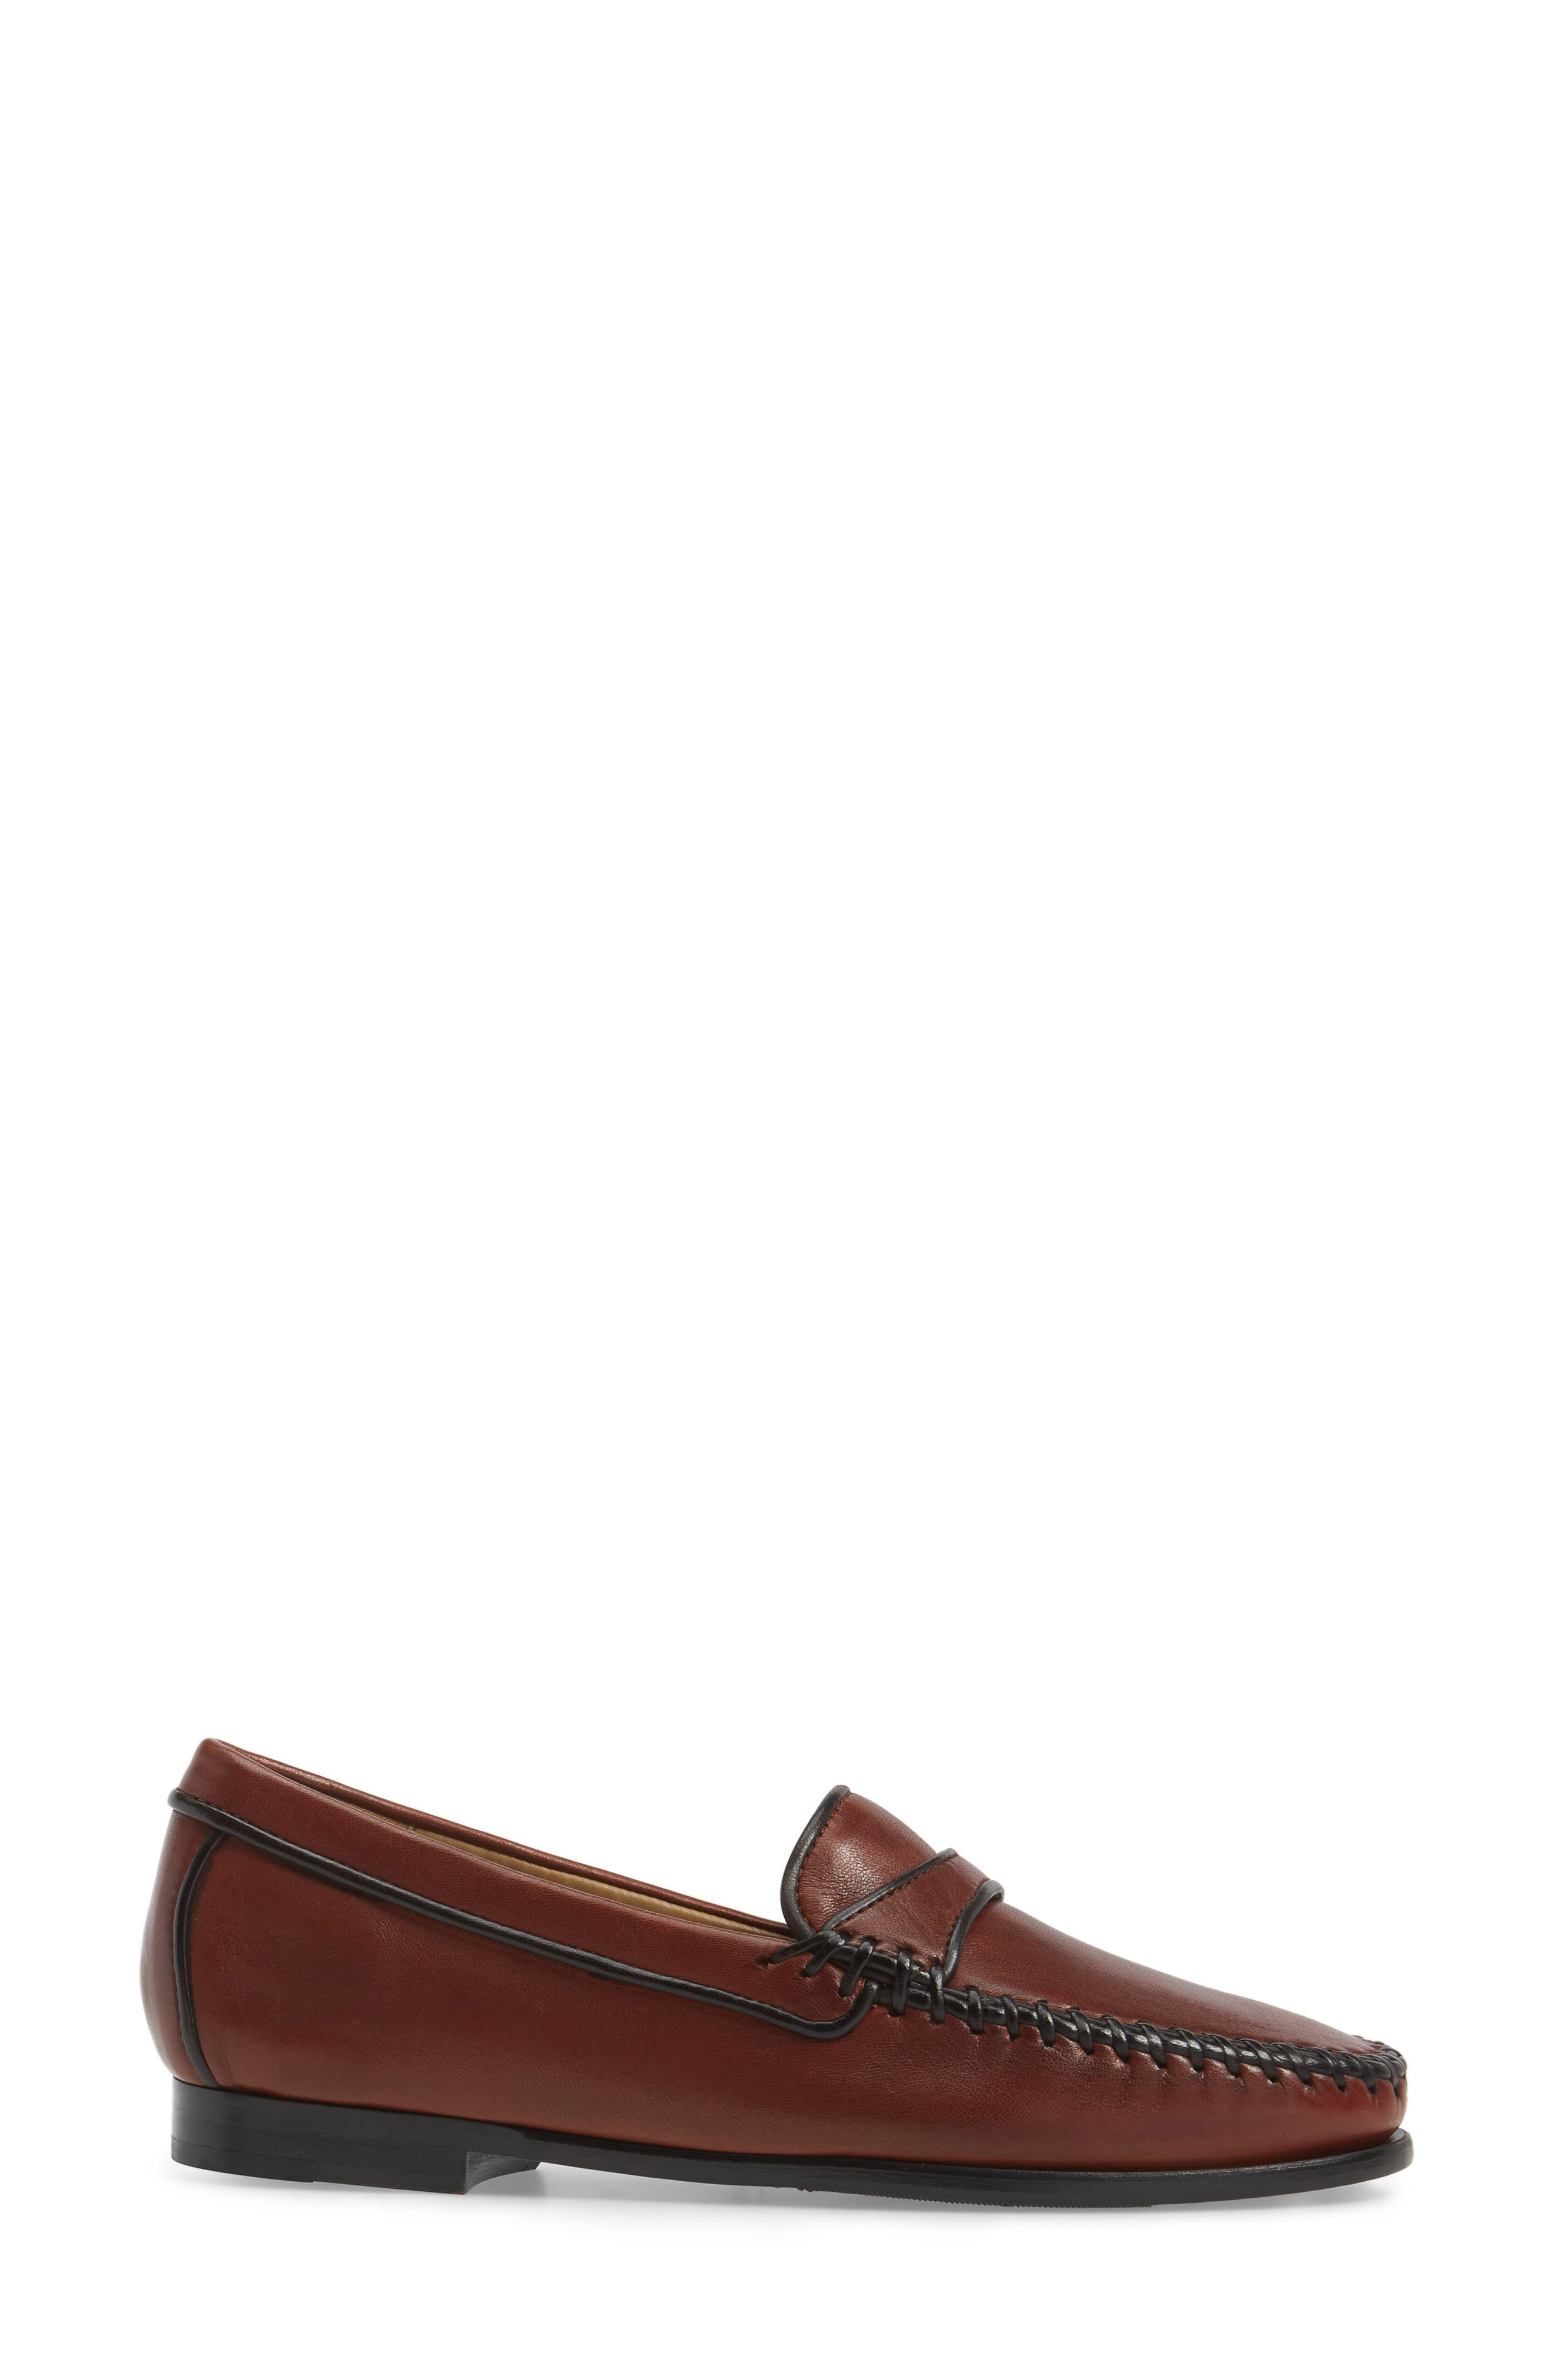 Aria Loafer,                             Alternate thumbnail 3, color,                             Vintage Luggage Leather